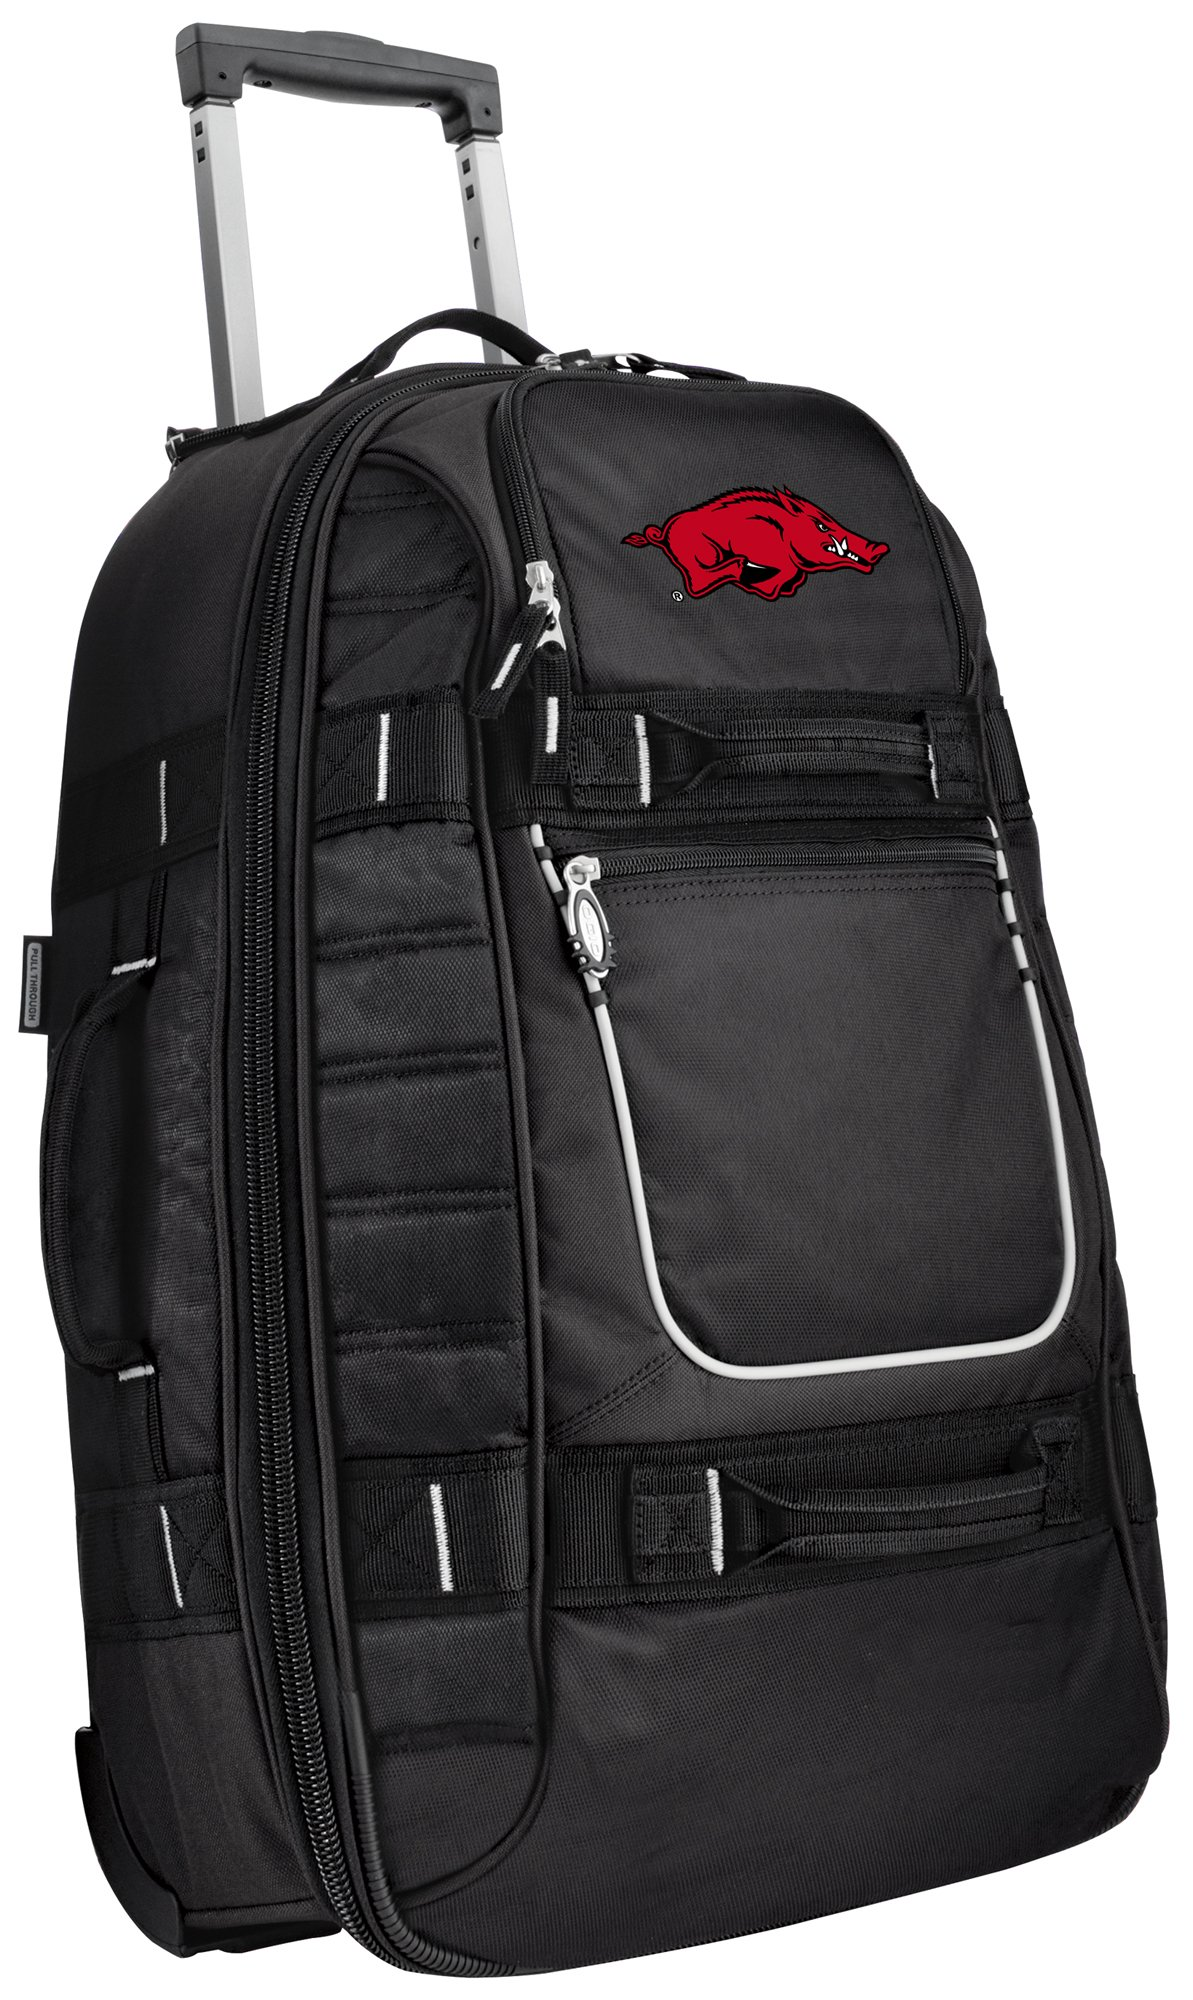 Small University of Arkansas Carry-On Bag Wheeled Suitcase Luggage Bags